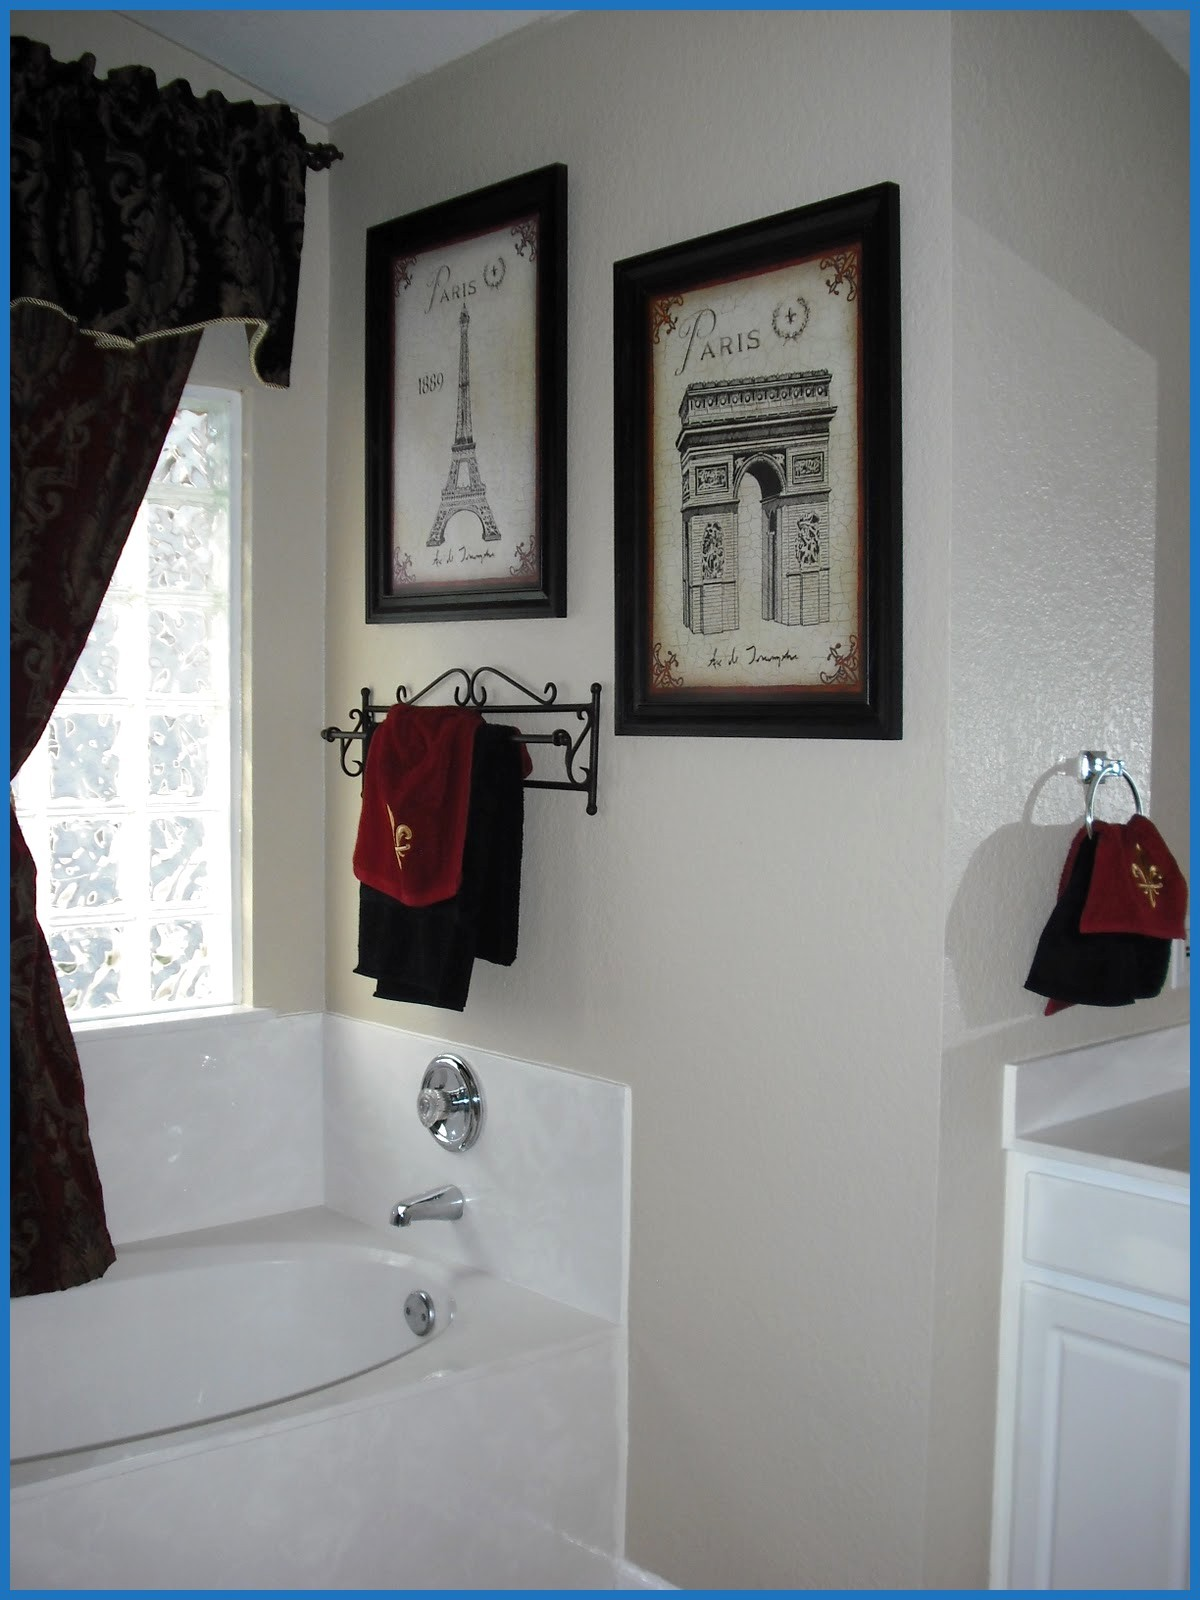 Best Paris Themed Bathroom Accessories Photograph Design Ideas Gallery Image And Wallpaper